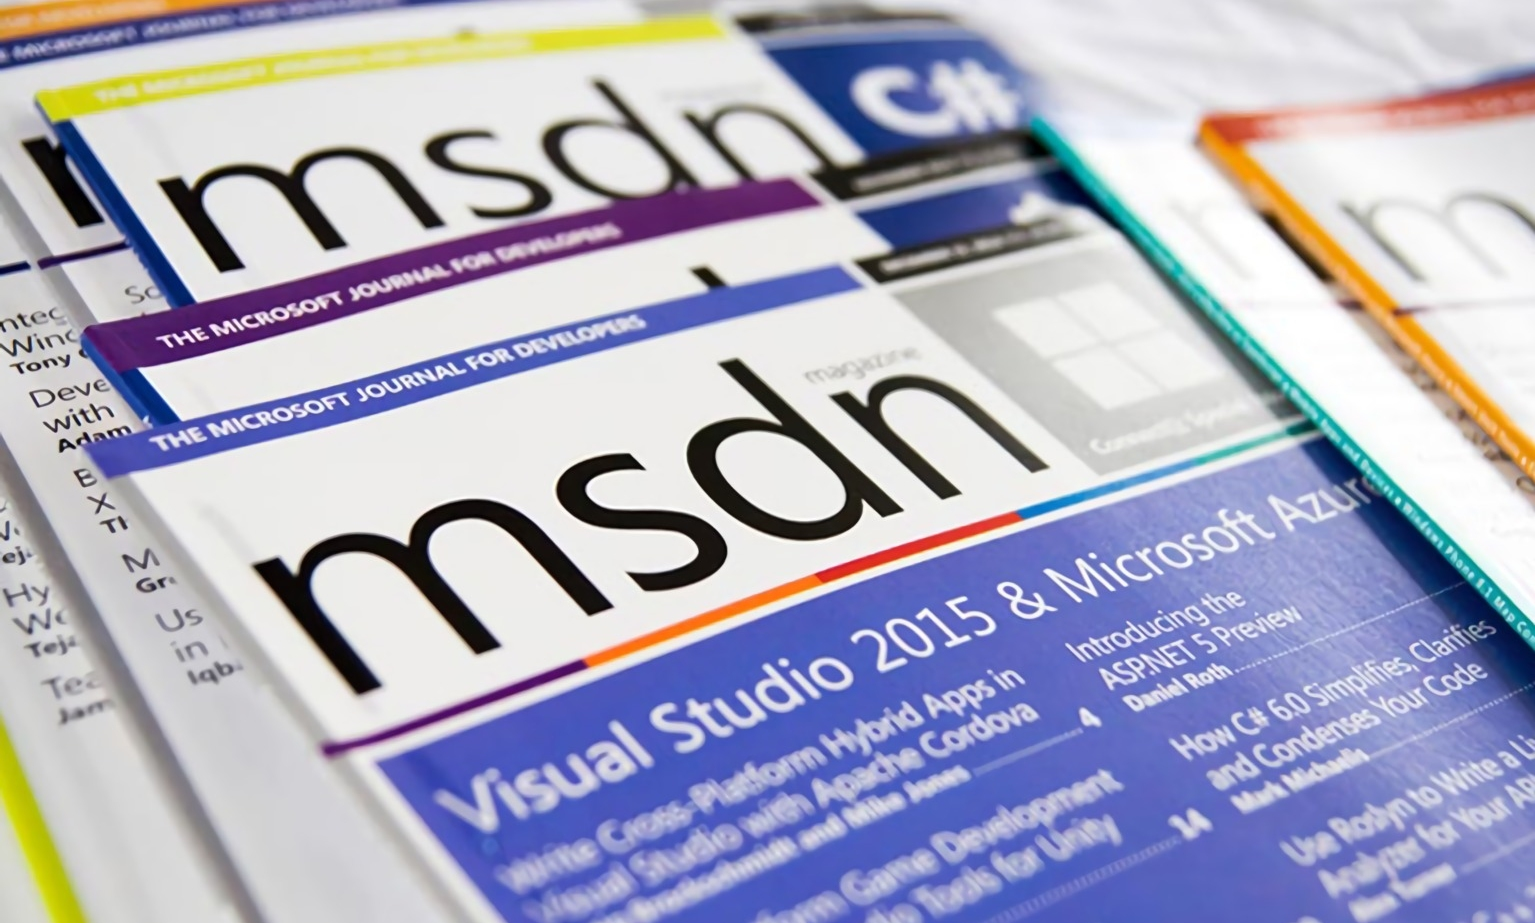 MSDN Magazine to end publication after 30+ year run - TechSpot